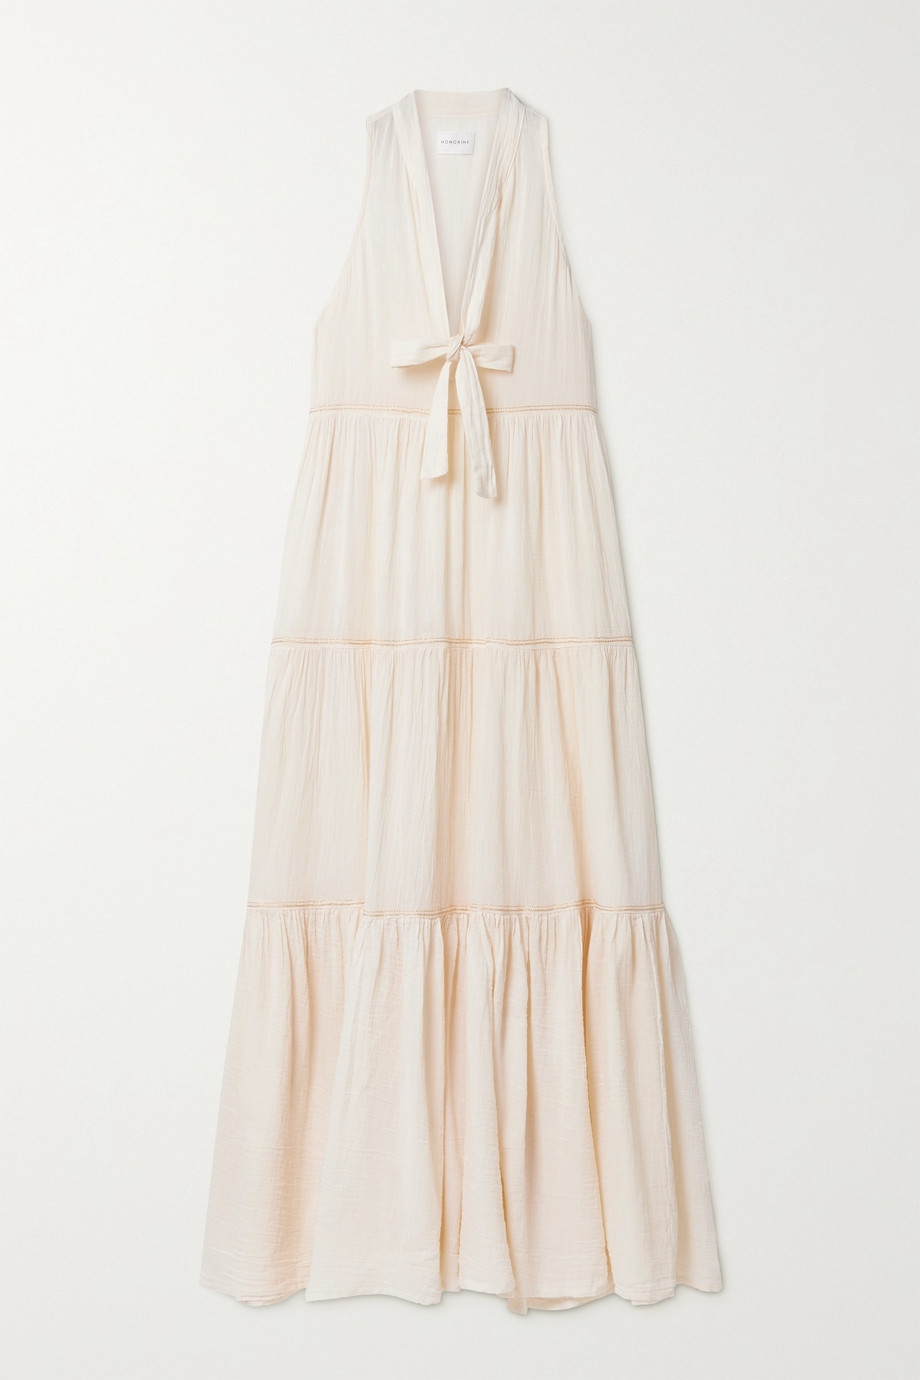 Honorine Eve tiered metallic-trimmed crinkled cotton-gauze maxi dress